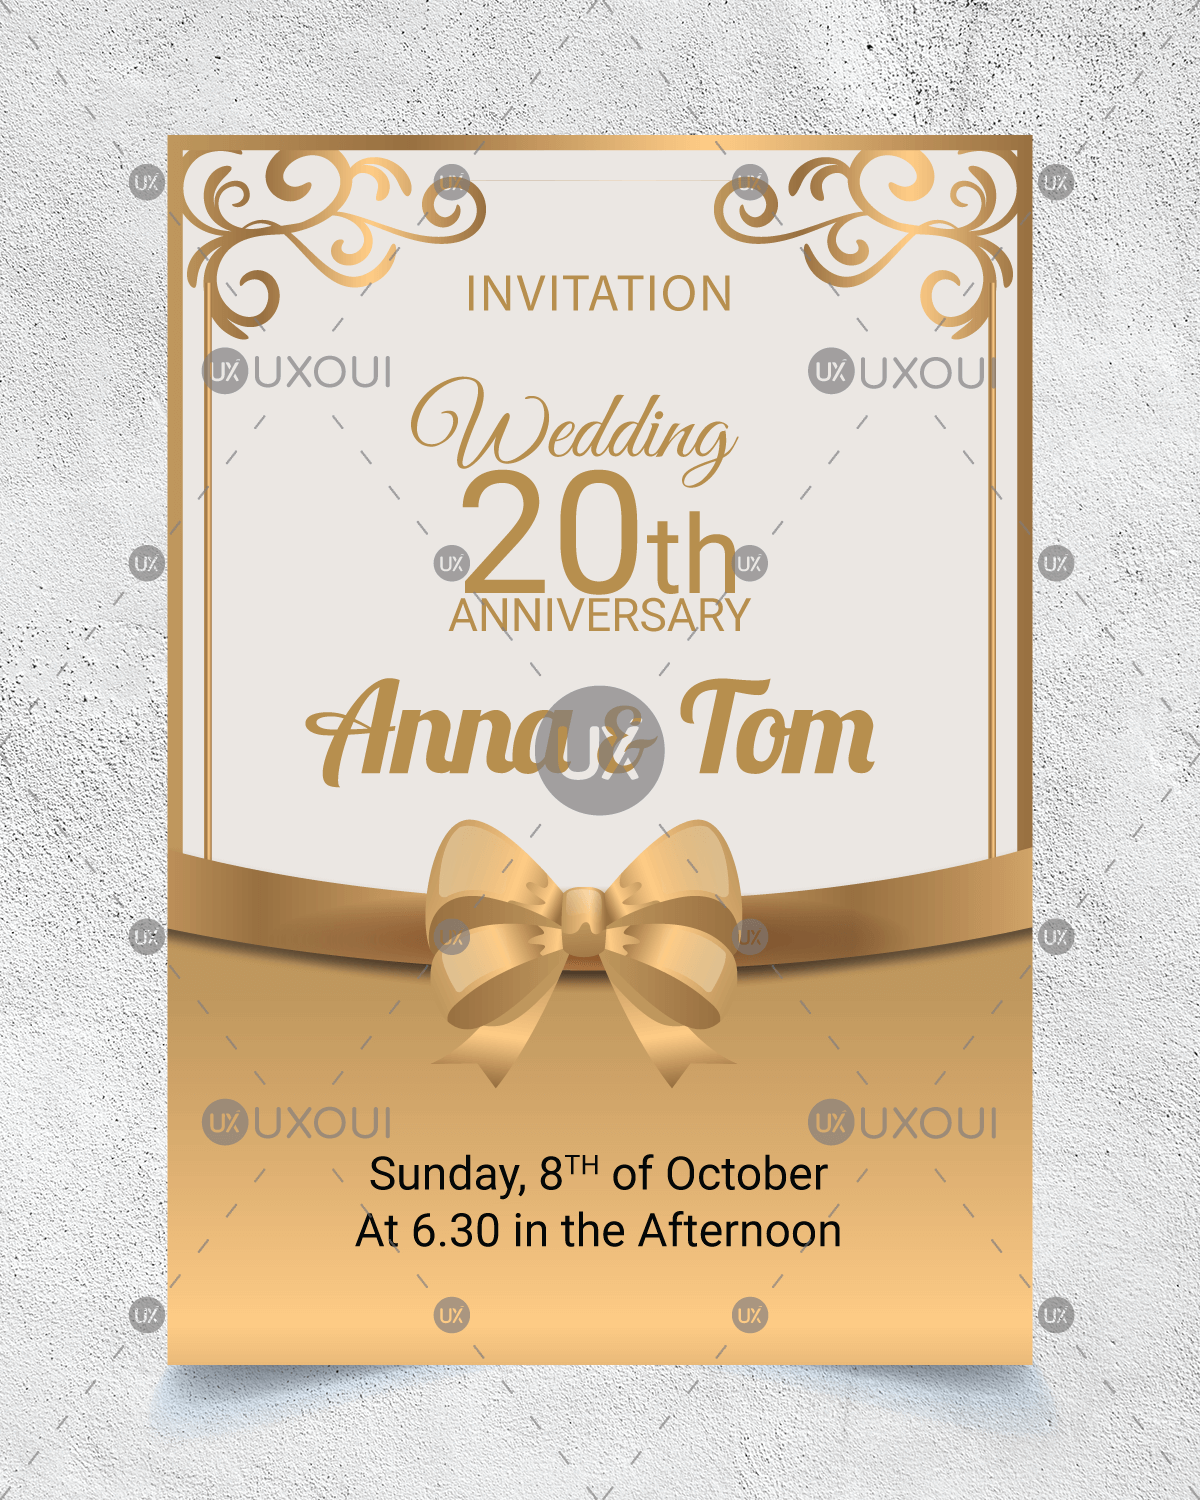 Wedding Anniversary Invitation Card Design With Golden Ornaments Vector Uxoui